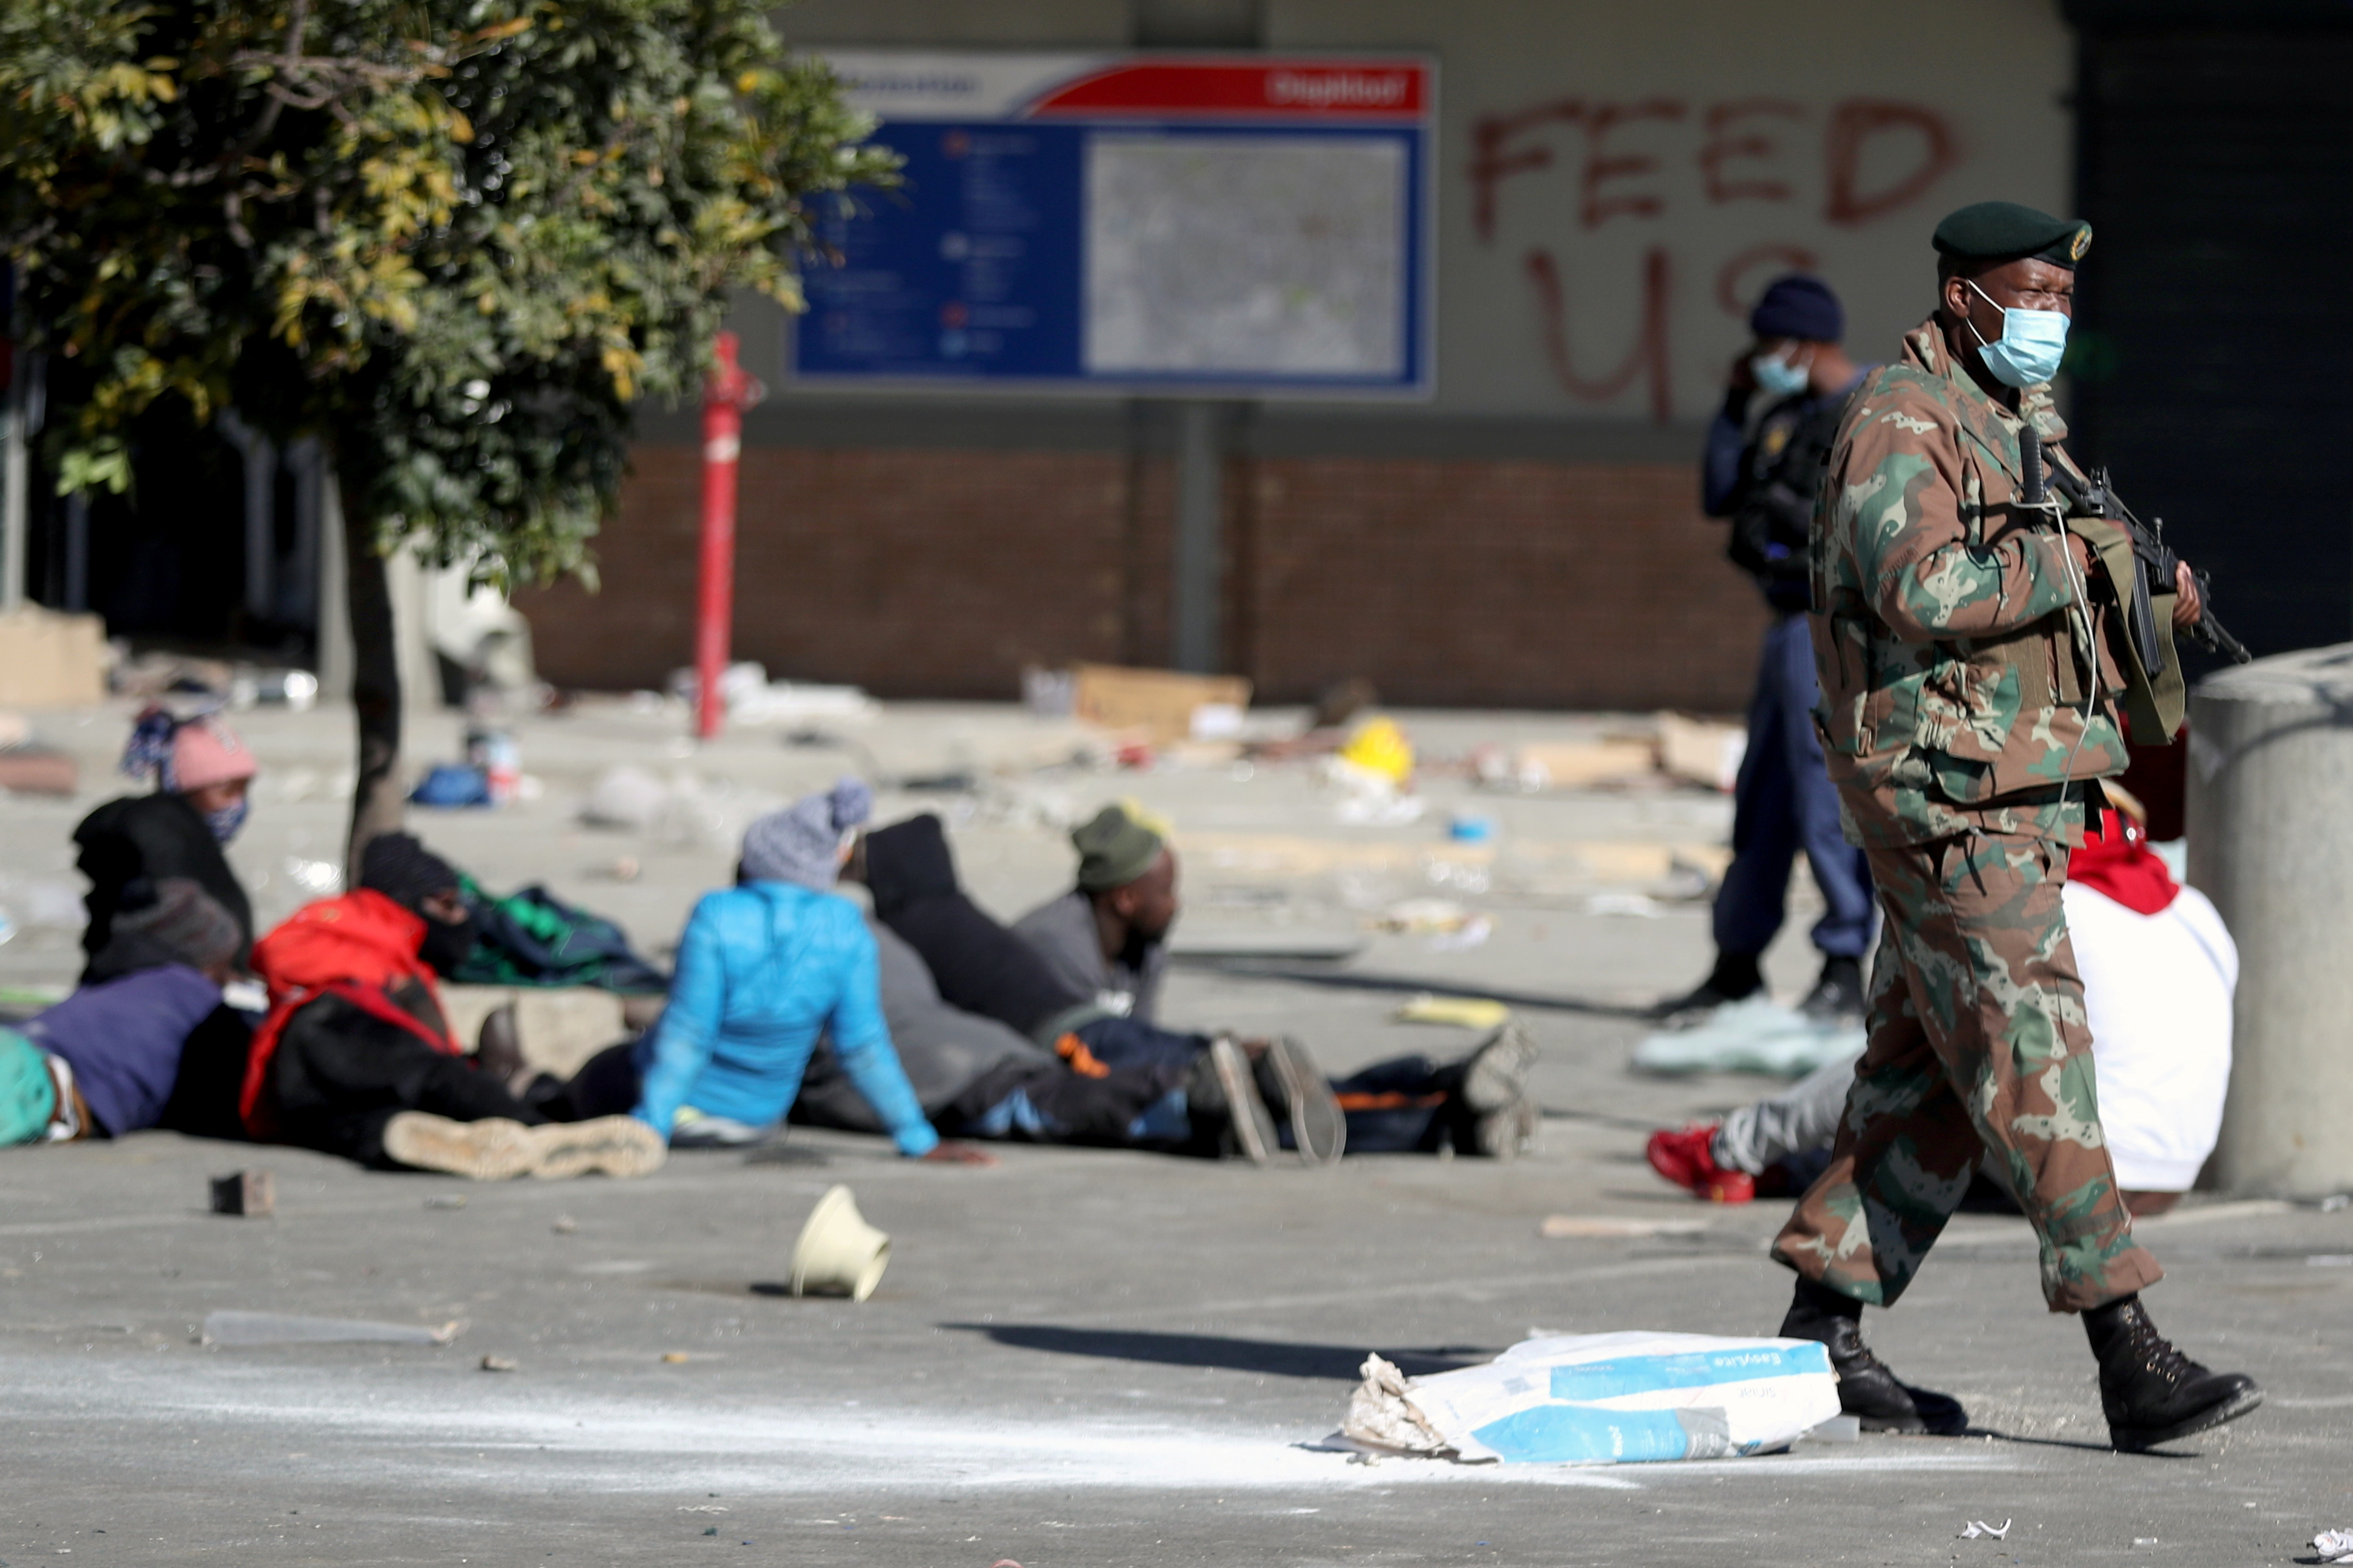 A member of the military keeps guard next to suspected looters outside Diepkloof mall as the country deploys army to quell unrest linked to jailing of former President Jacob Zuma, in Soweto, South Africa, July 13, 2021. REUTERS/Siphiwe Sibeko